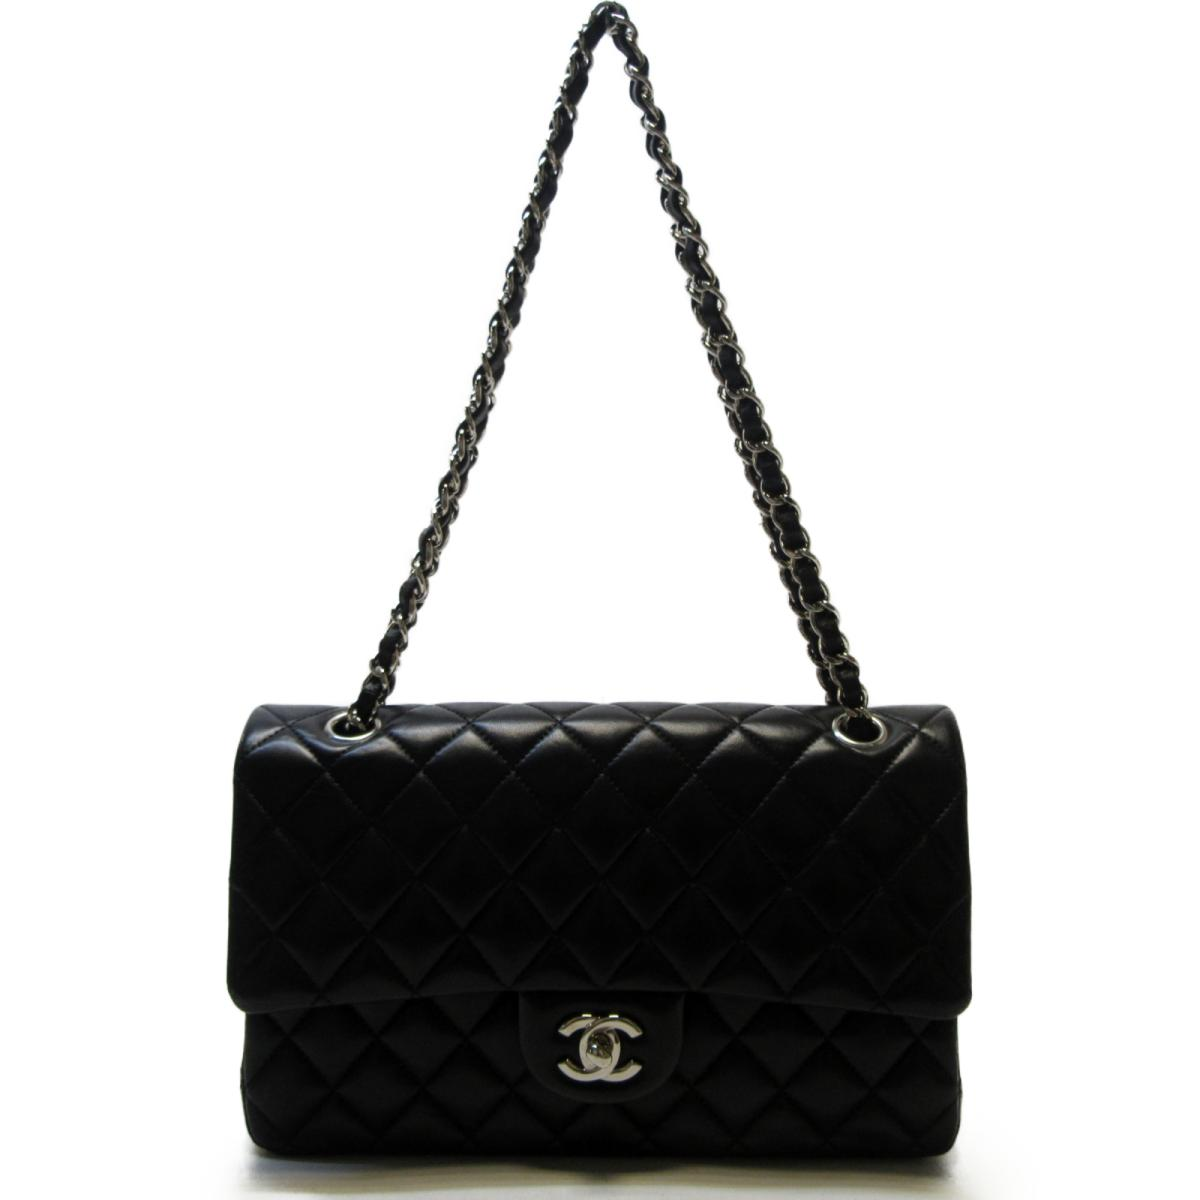 CHANEL バッグ  COCO25 菱格壓紋雙蓋銀鍊肩背包